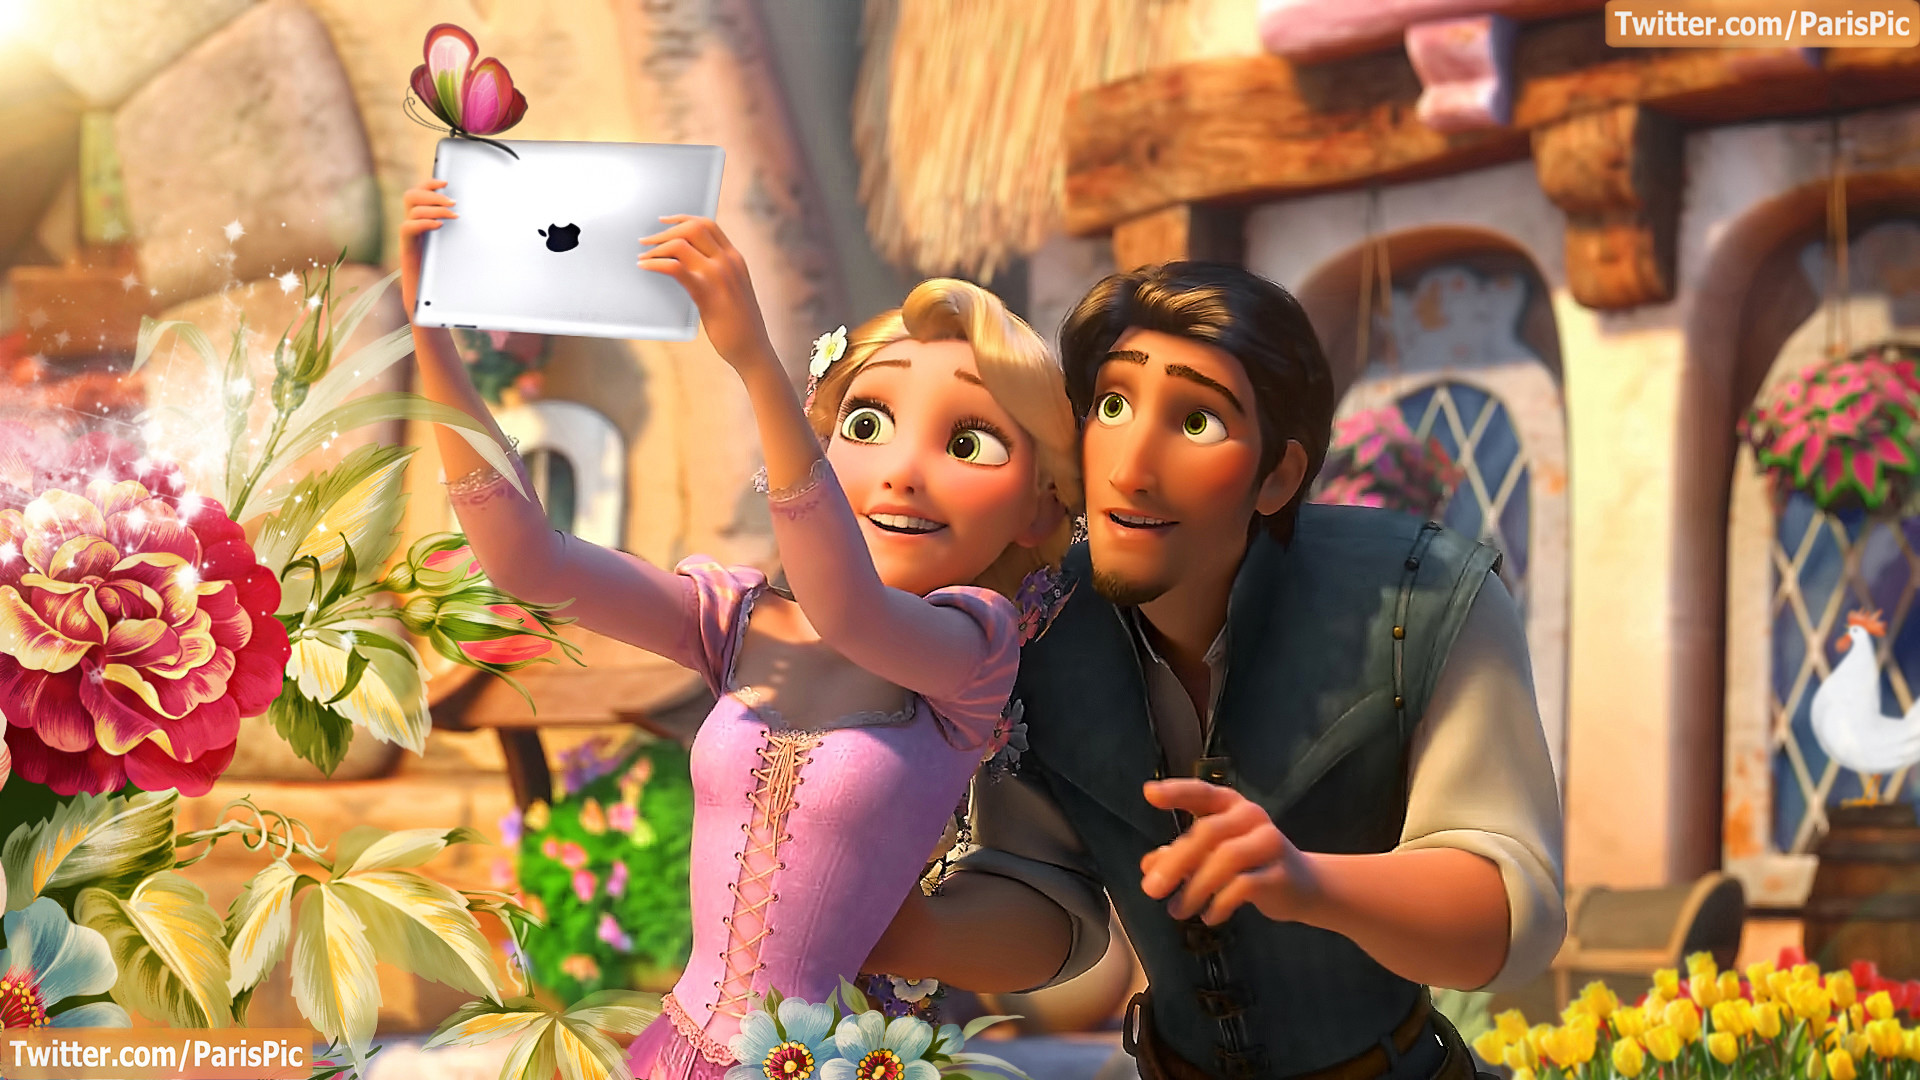 Free Download Tangled Disney Wallpaper 63 Pictures 1920x1080 For Your Desktop Mobile Tablet Explore 42 Tangled The Series Wallpapers Tangled The Series Wallpapers Tangled Wallpaper Tangled Wallpapers